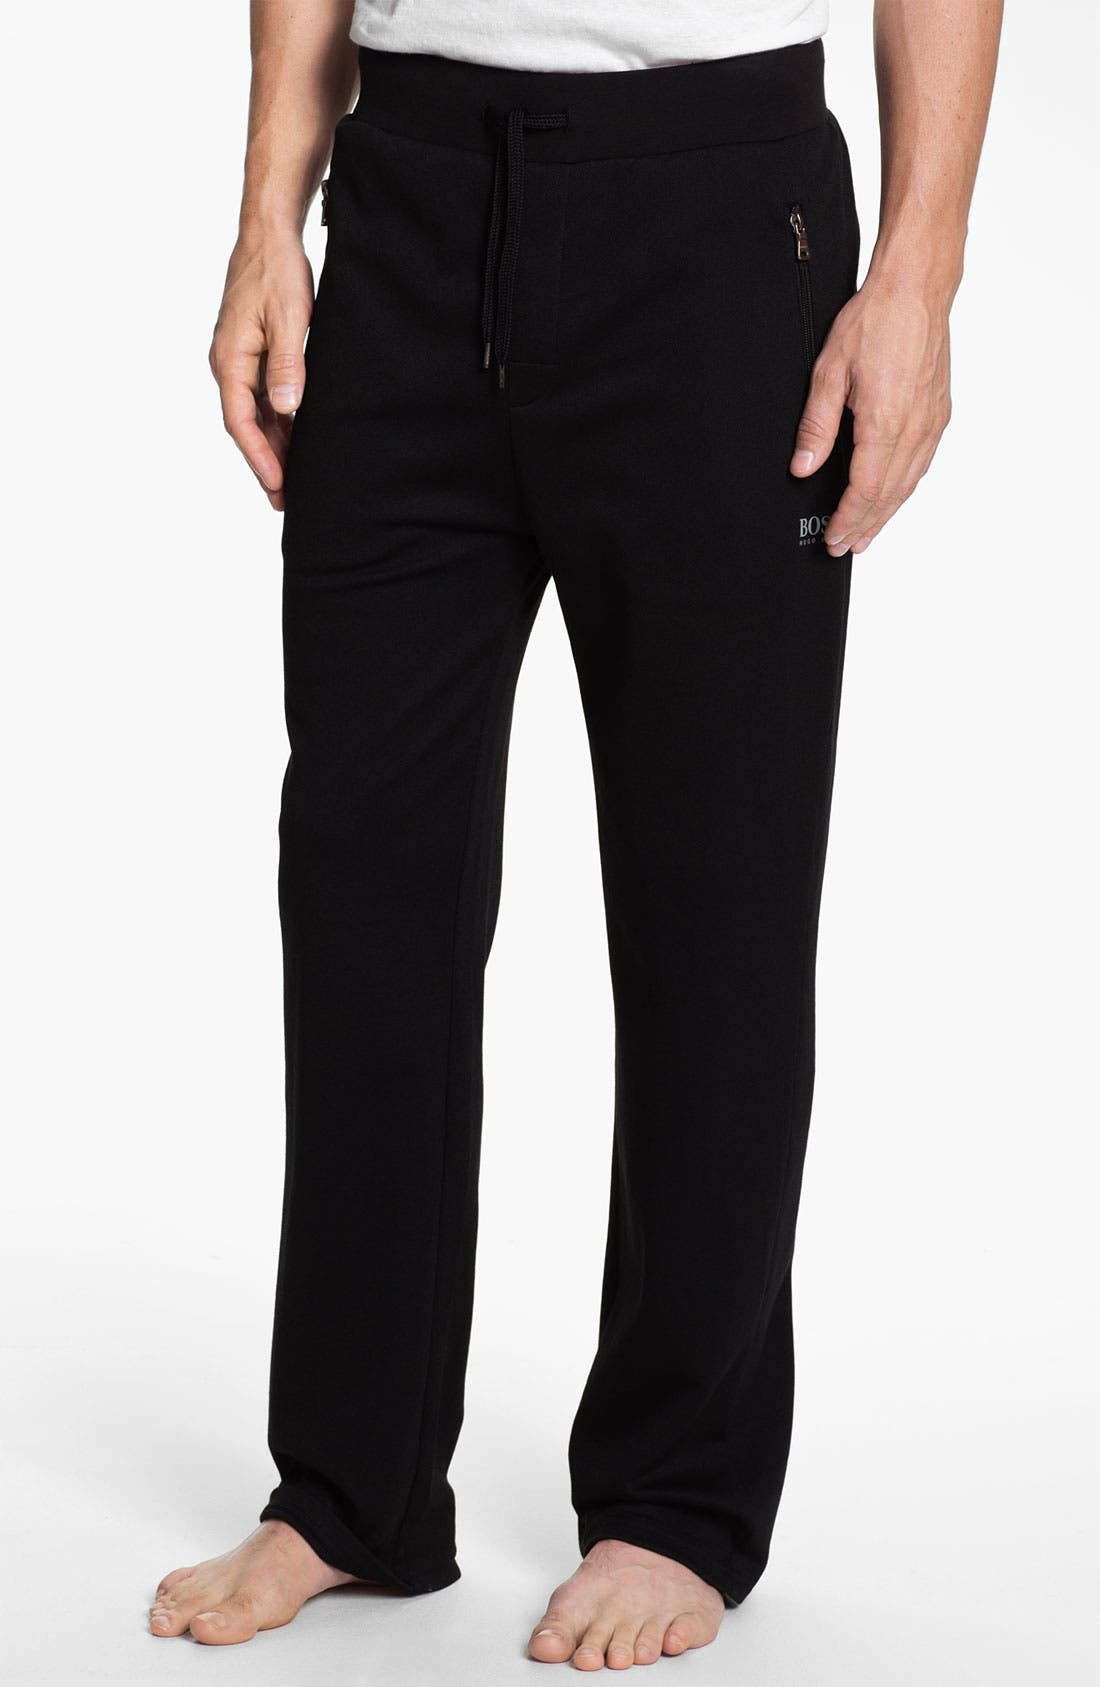 Alternate Image 1 Selected - BOSS Black Cotton Blend Lounge Pants